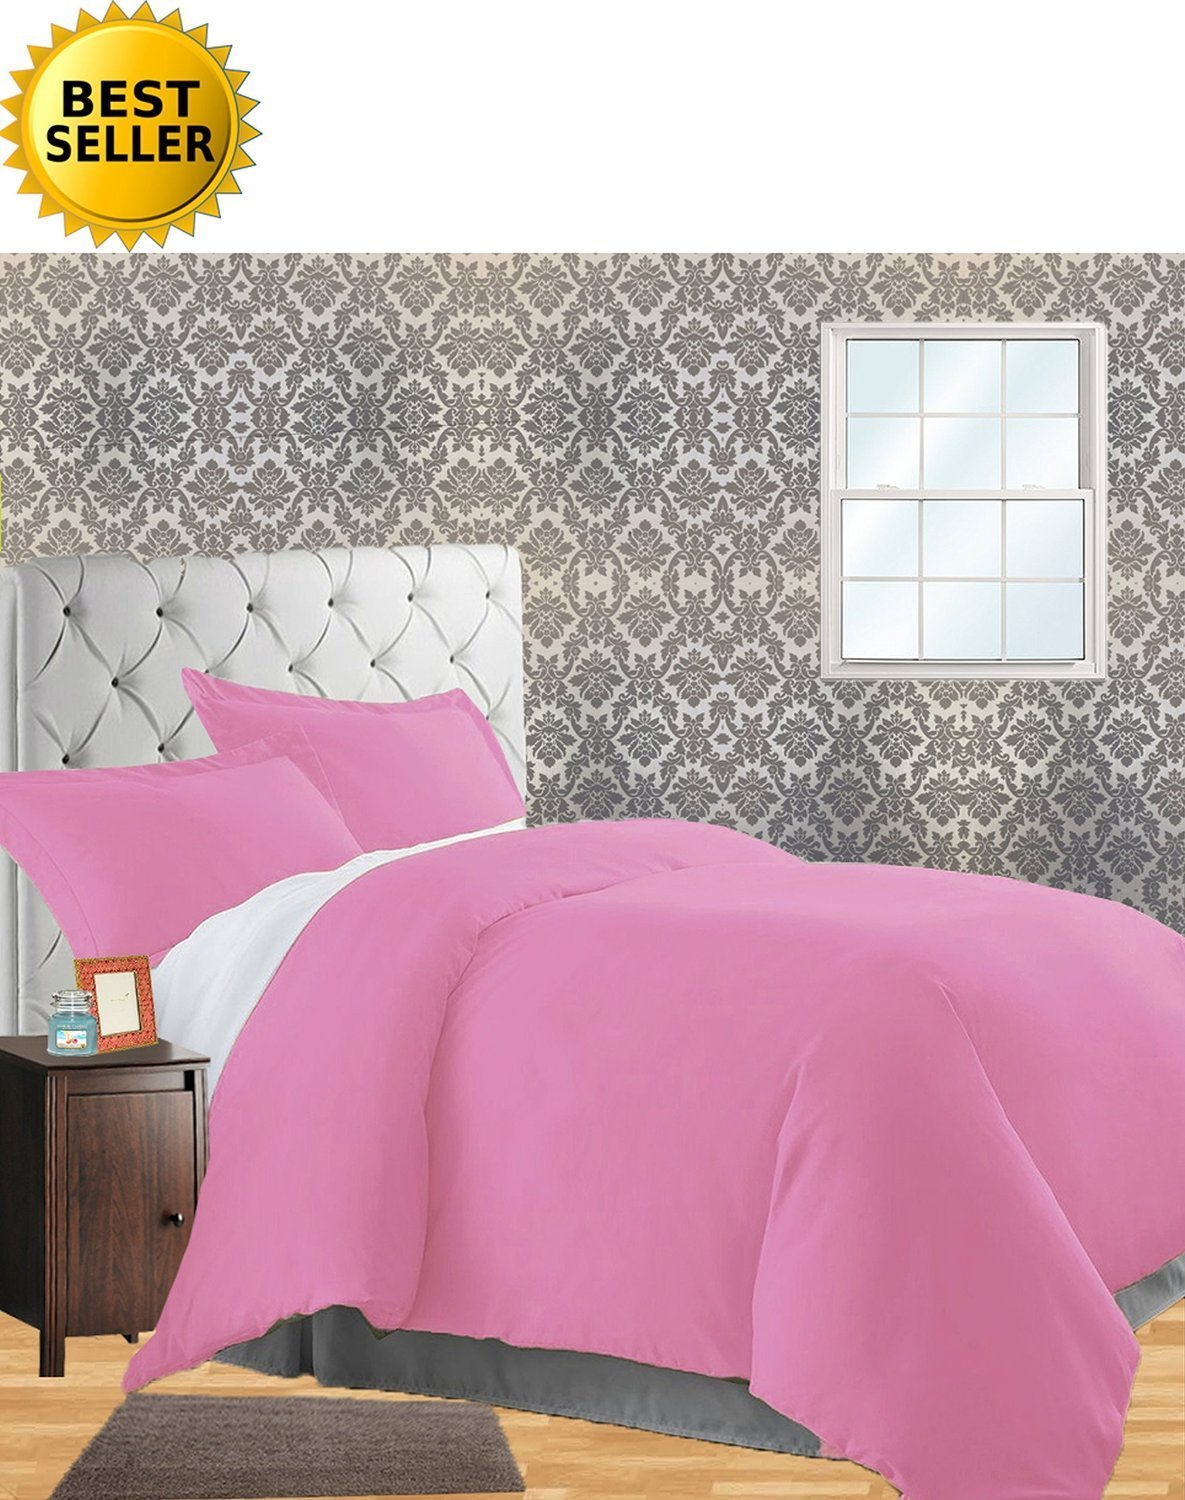 (King/California King, Light Pink) Celine Linen Wrinkle & Fade Resistant 3-Piece Duvet Cover Set Protects and Covers your Comforter / Duvet Insert, 1500 Series LUXURIOUS 100% HypoAllergenic Super Silky Soft, King/Cali King, Light Pink B01F0I3PDK King/California King ライトピンク ライトピンク King/California King